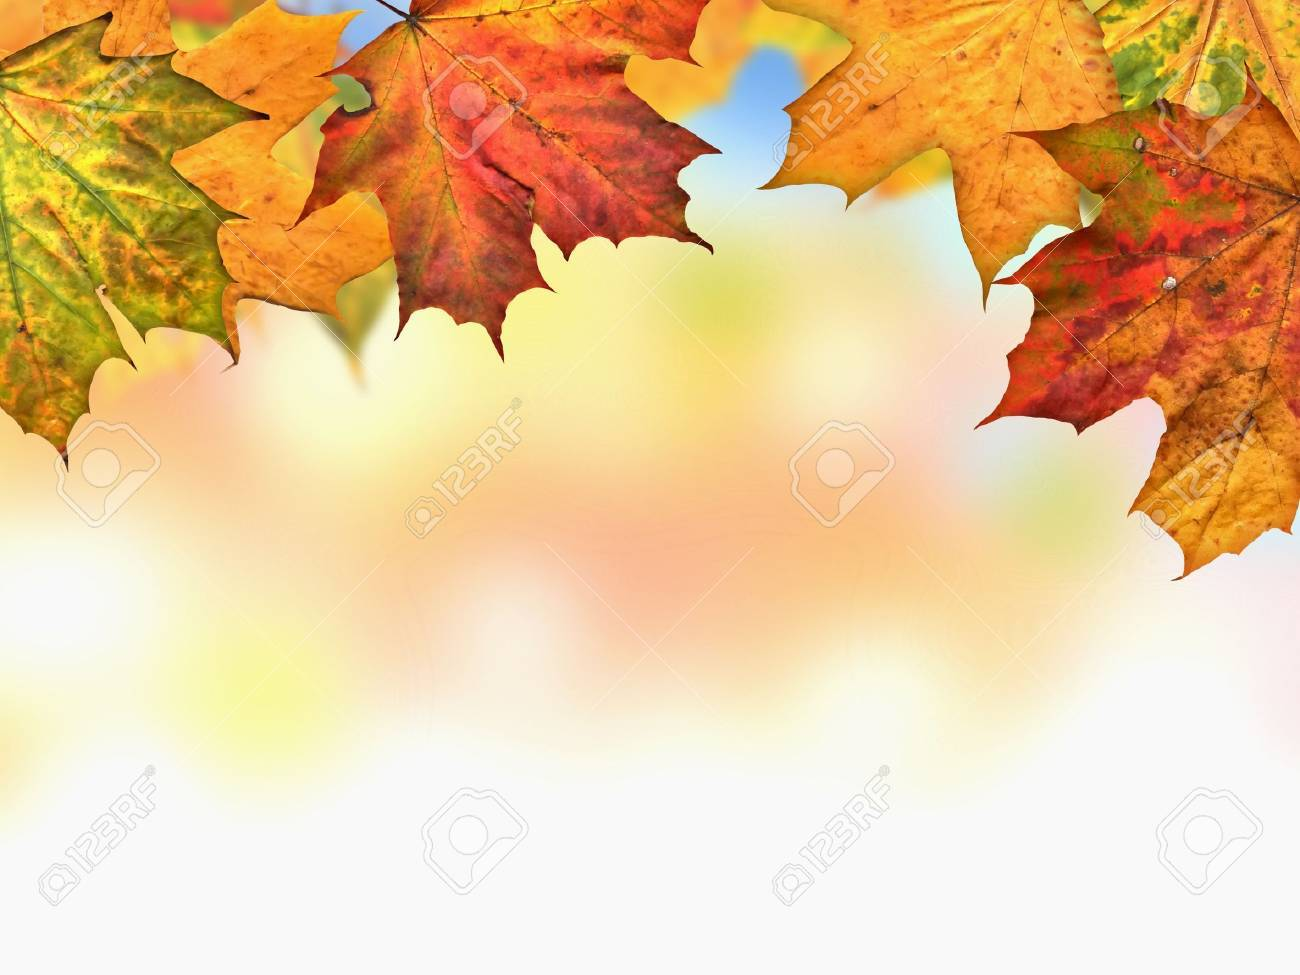 Autumn Leaves Stock Photo - 14619676